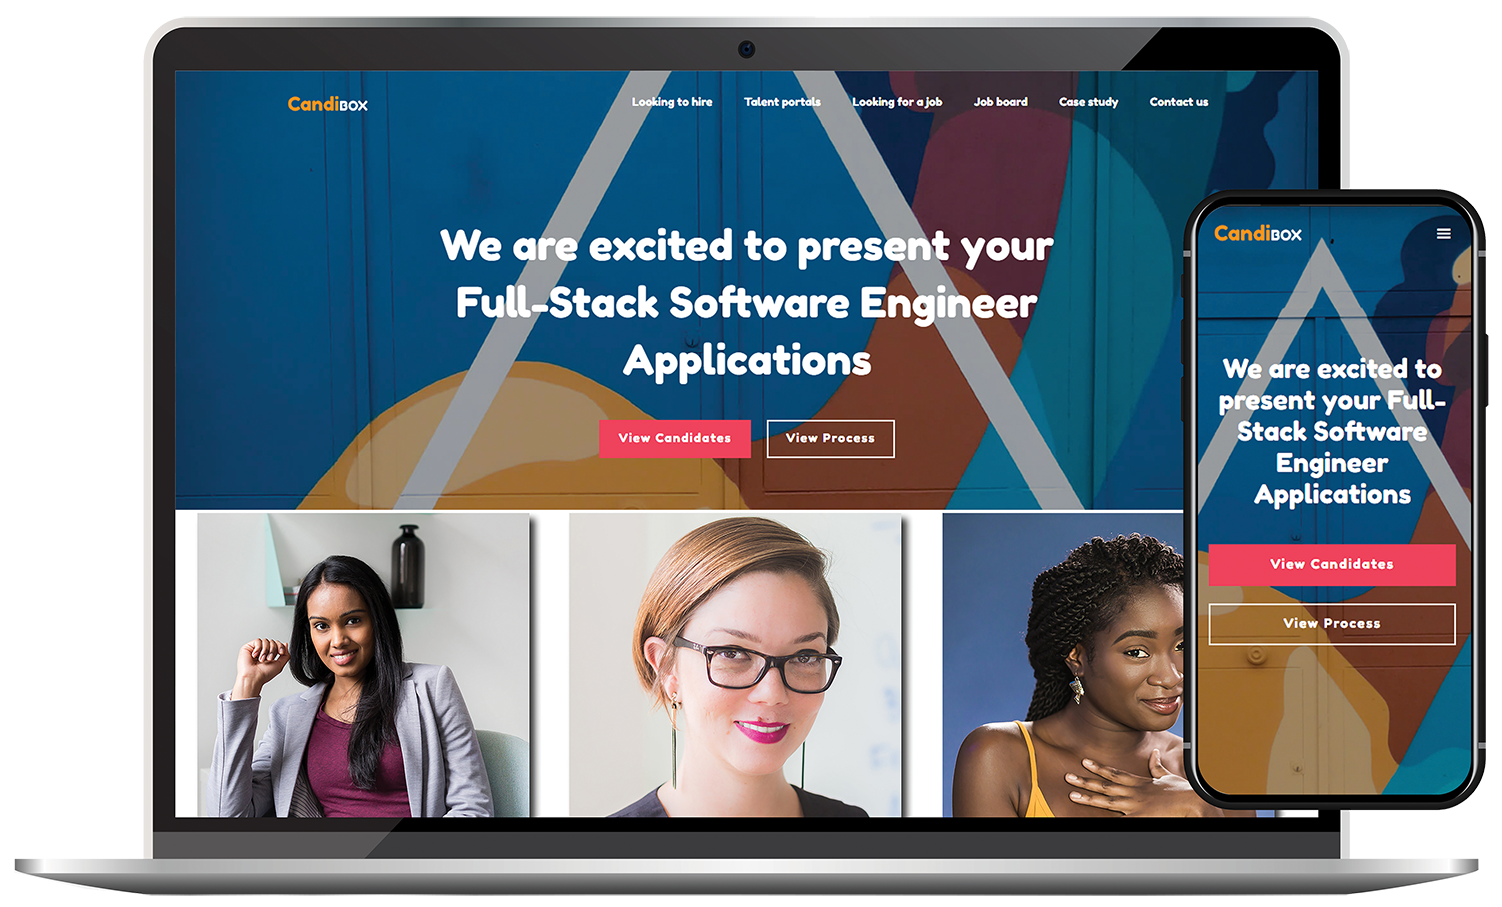 Recruitment Platform Talent Applicant Tracking System